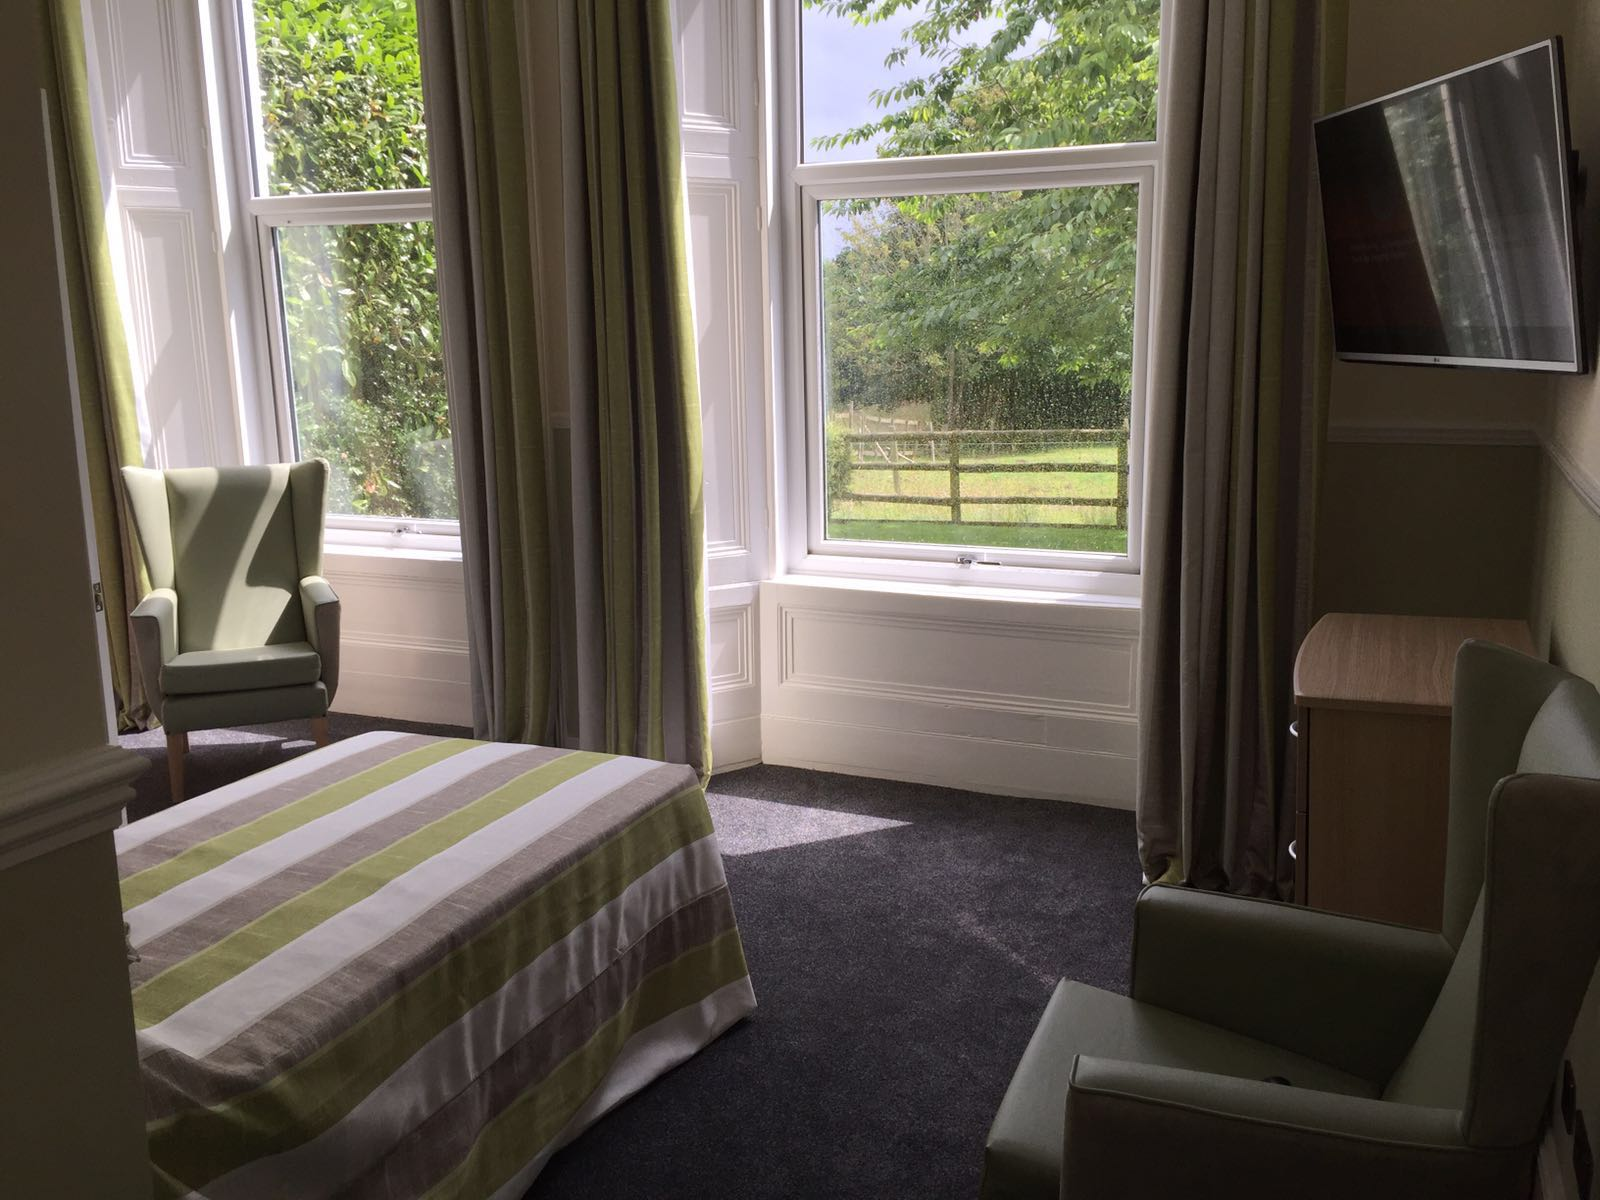 Shedfield Lodge Care Home Dementia Specialist Luxury Accomodation 7